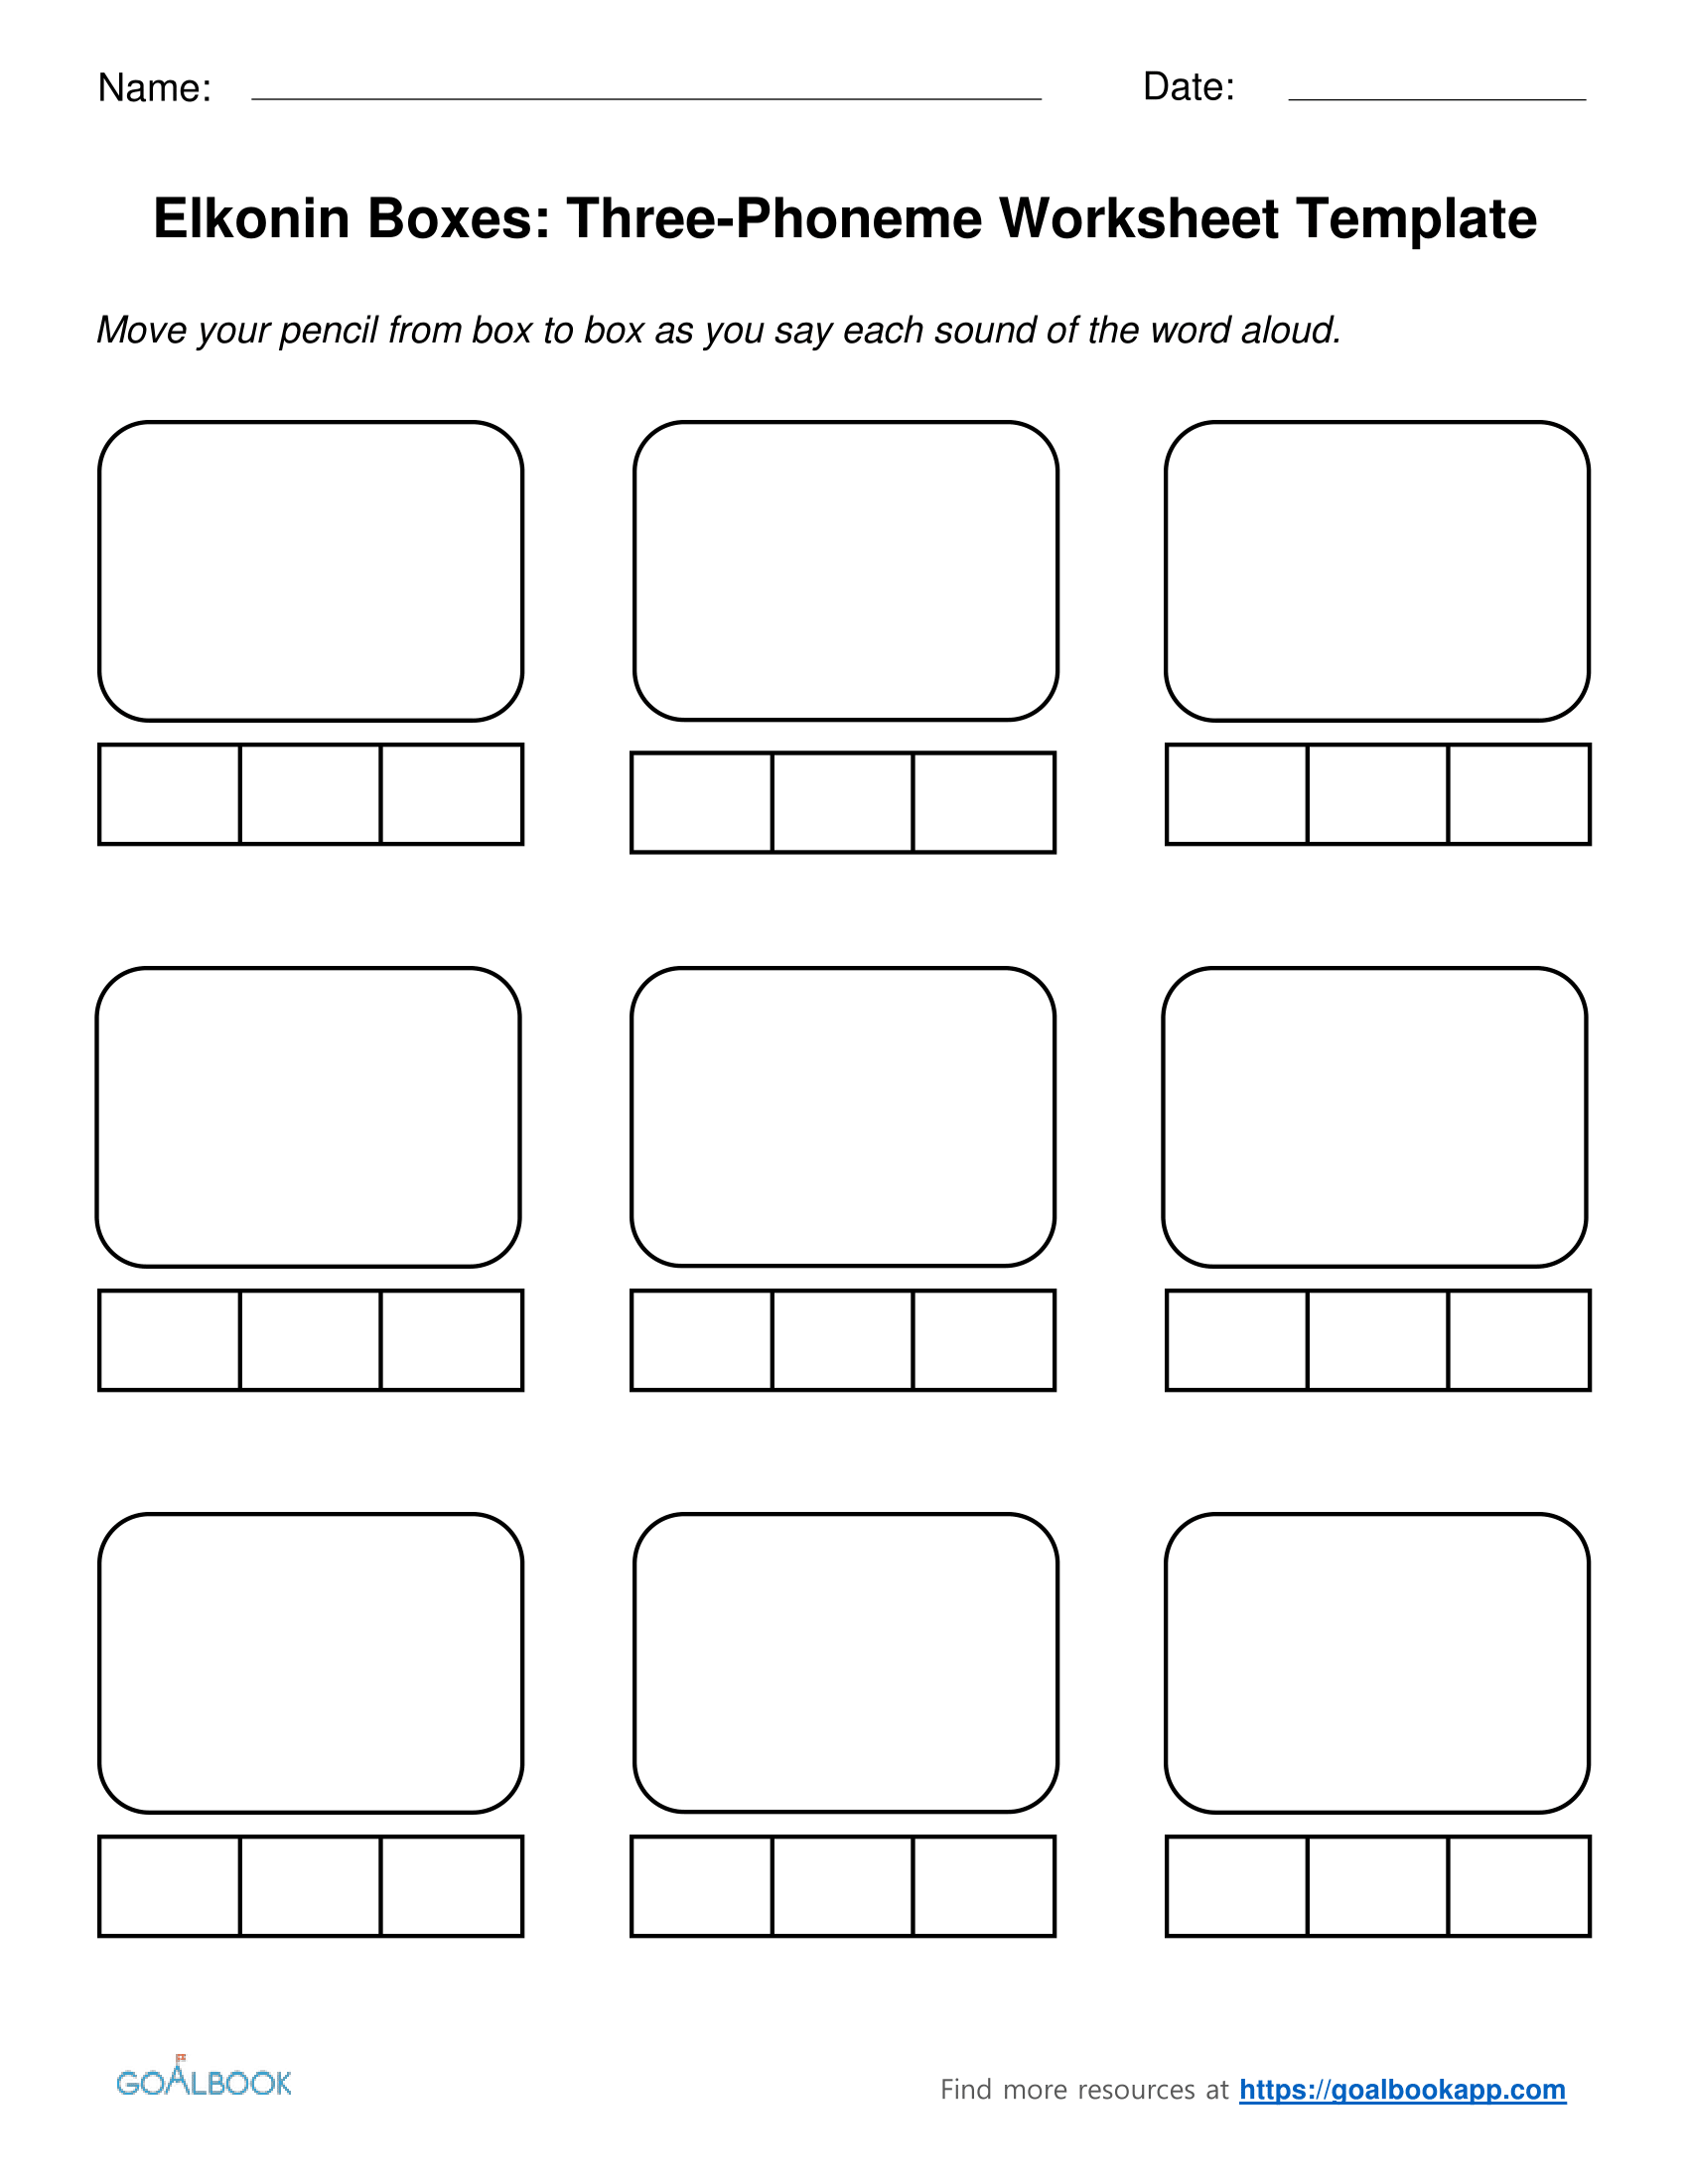 Worksheets Phoneme Worksheets three phoneme elkonin boxes and worksheets goalbook pathways enlarge